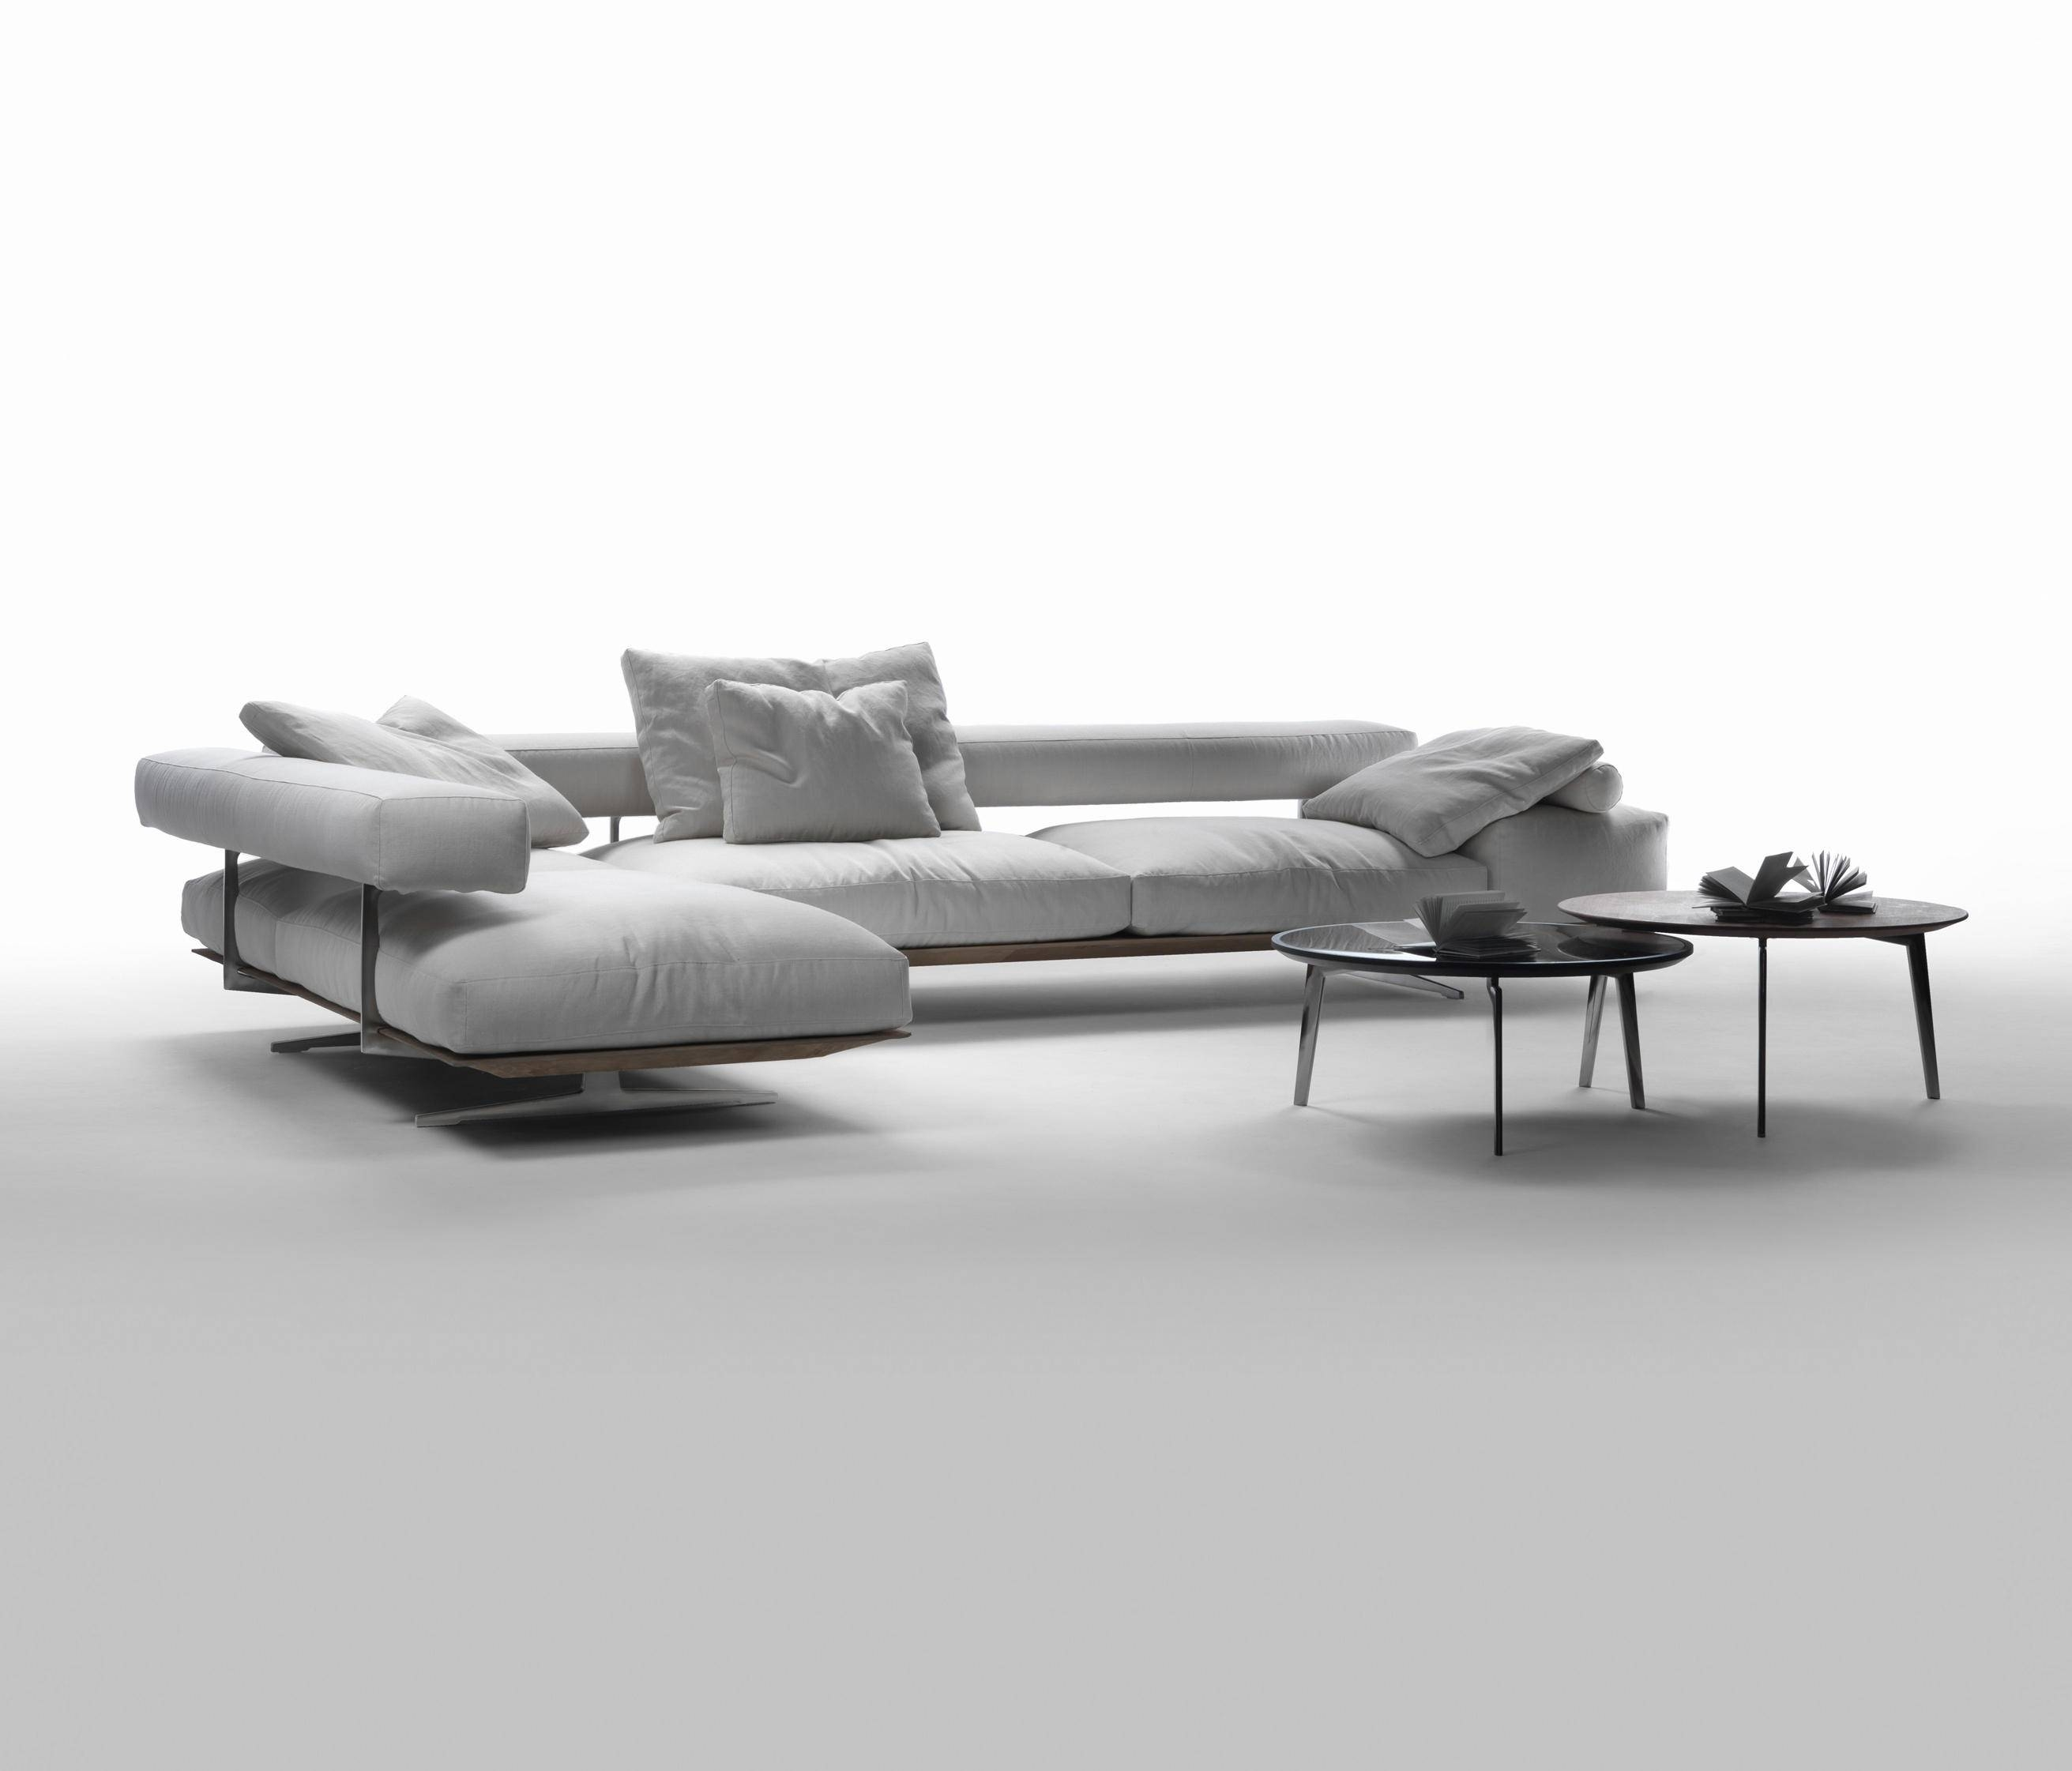 Wing - Lounge Sofas From Flexform | Architonic throughout Flexform Sofas (Image 24 of 25)